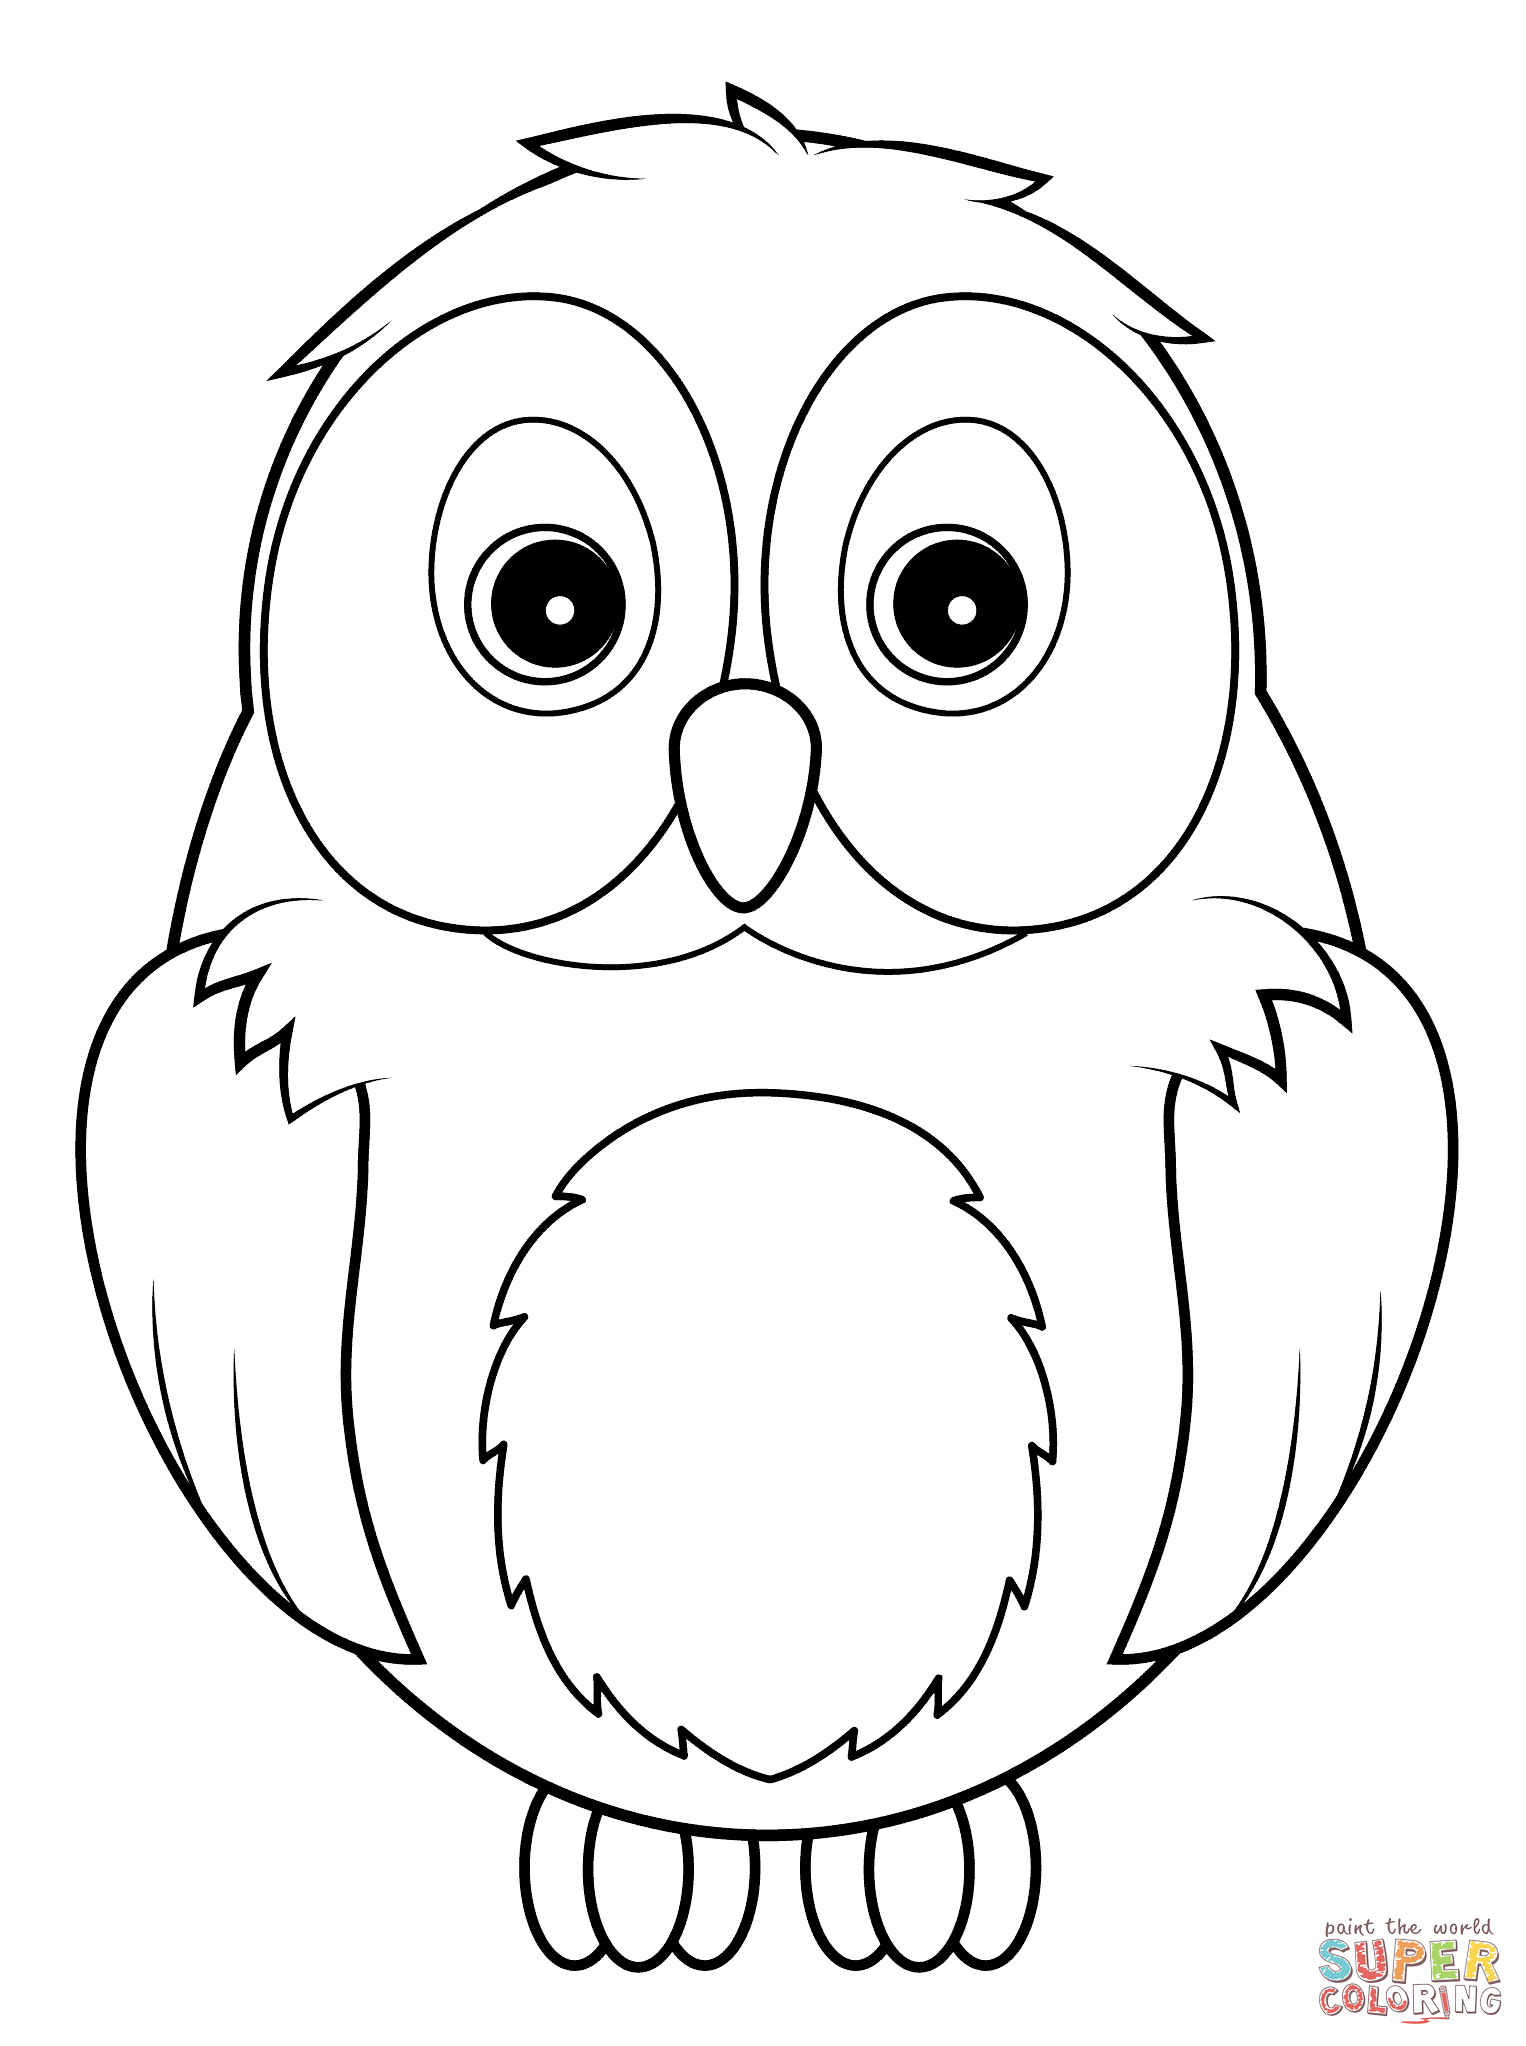 1526x2046 How To Draw A Cute Snowy Owl For Kids